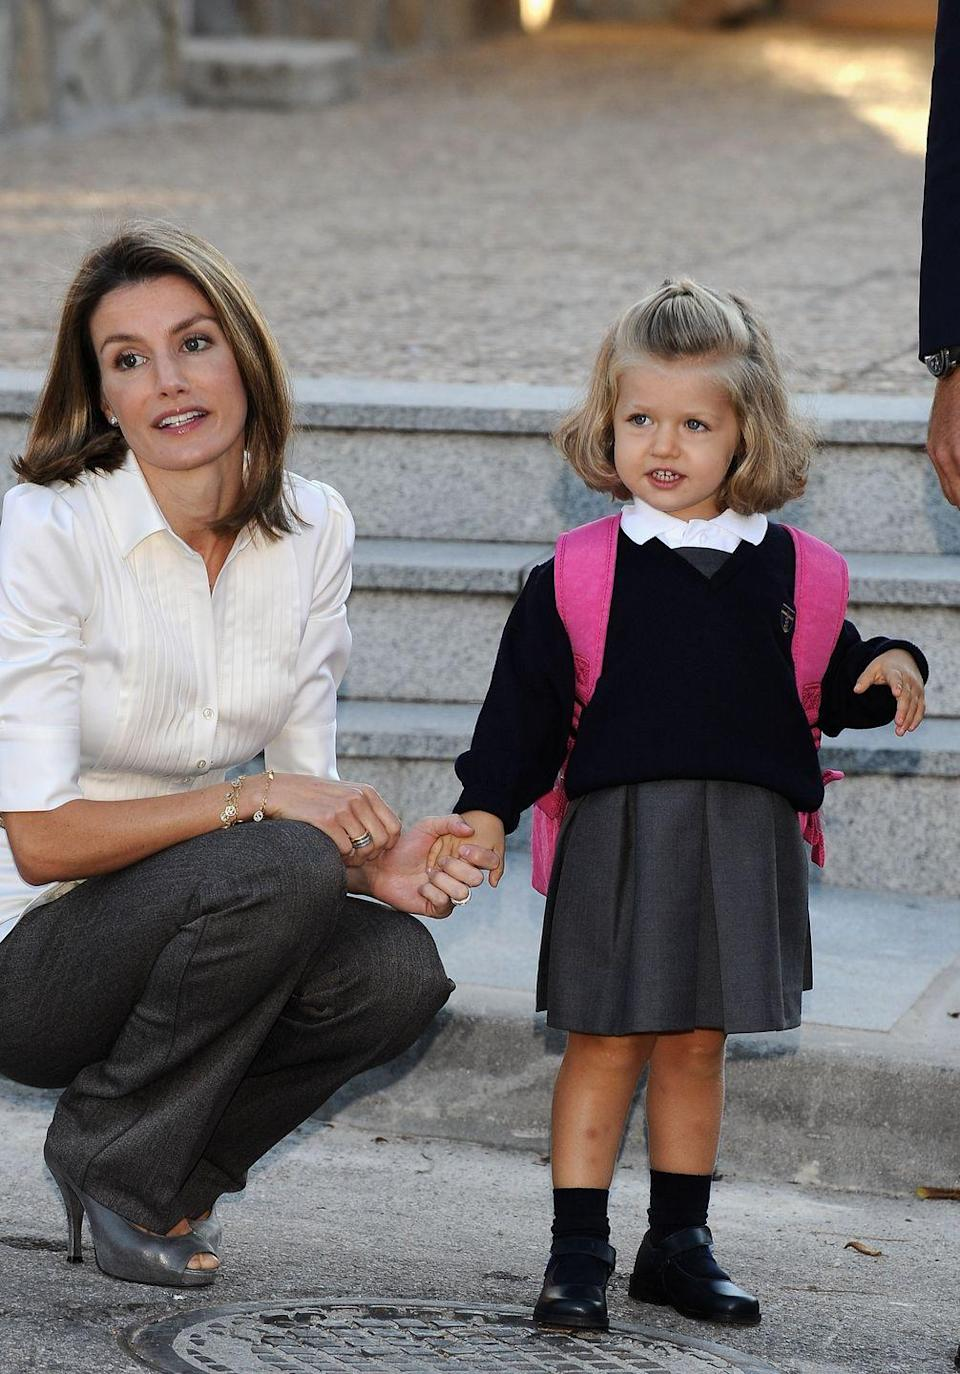 <p>Princess Leonor of Spain attends her first day accoompanied by her mother, Princess Letizia and her father, Prince Felipe (not pictured), at Santa Maria de los Rosales School in Aravaca, near Madrid, Spain.</p>